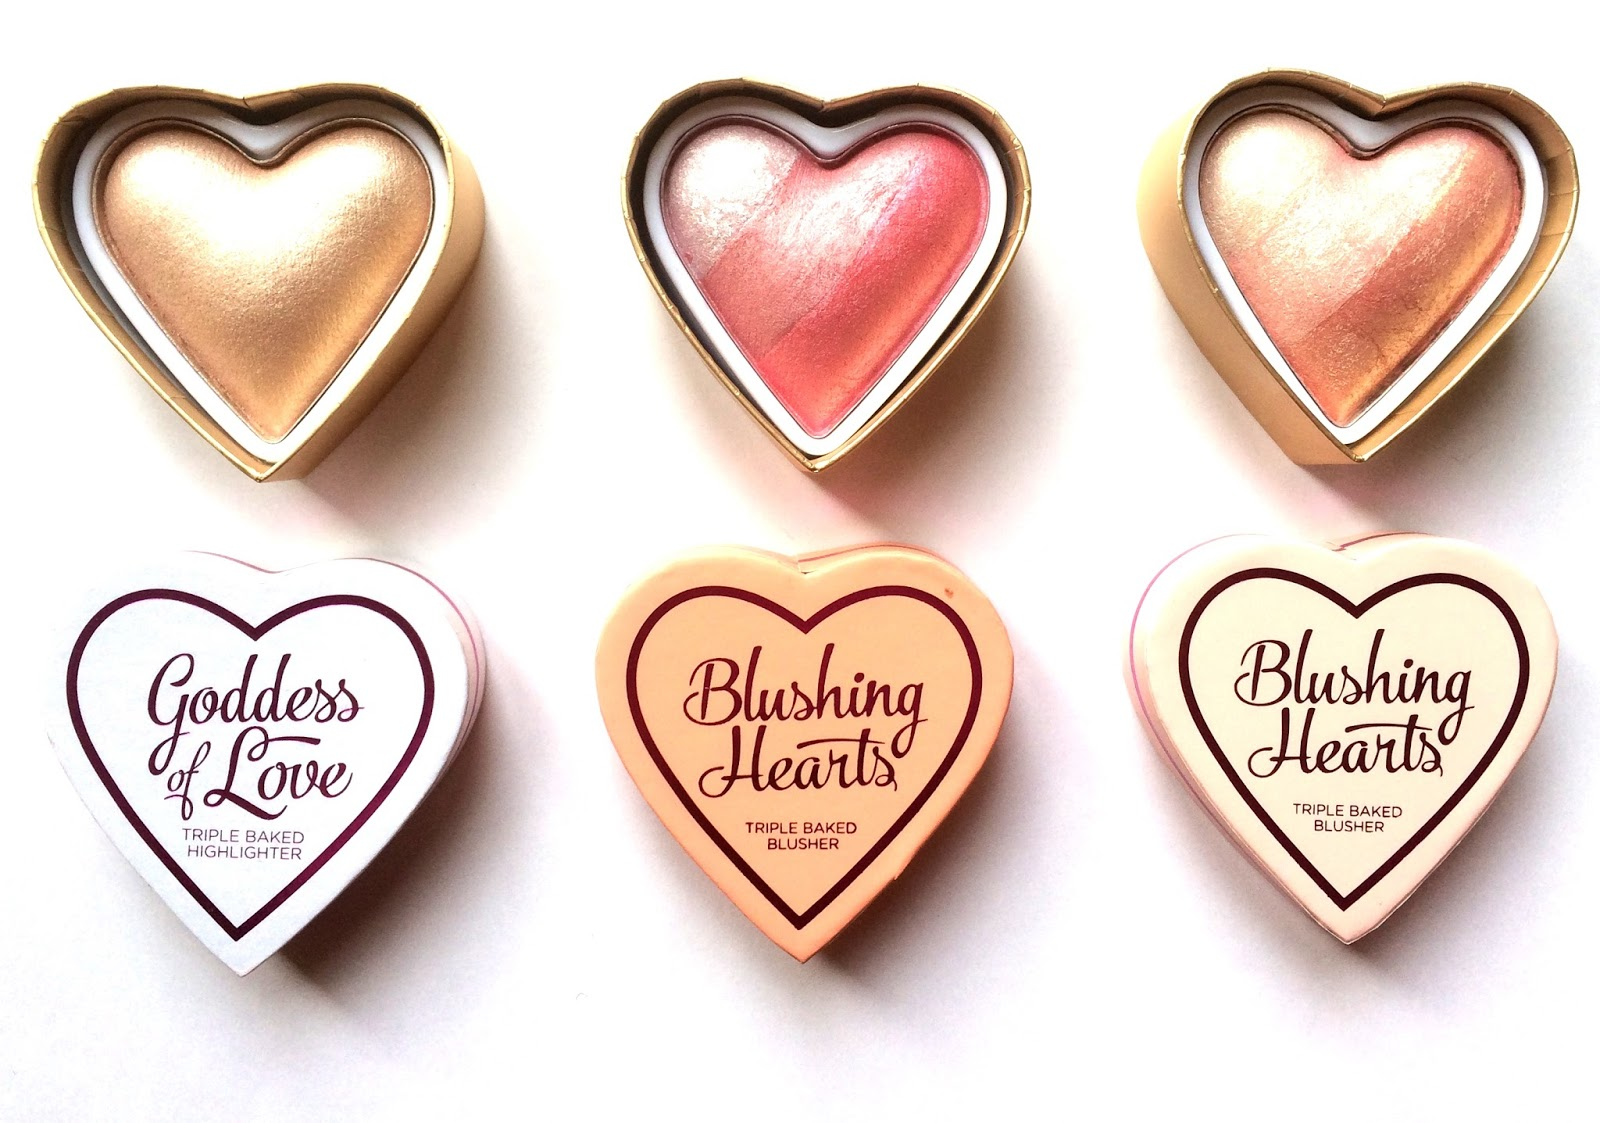 new blushing hearts shades